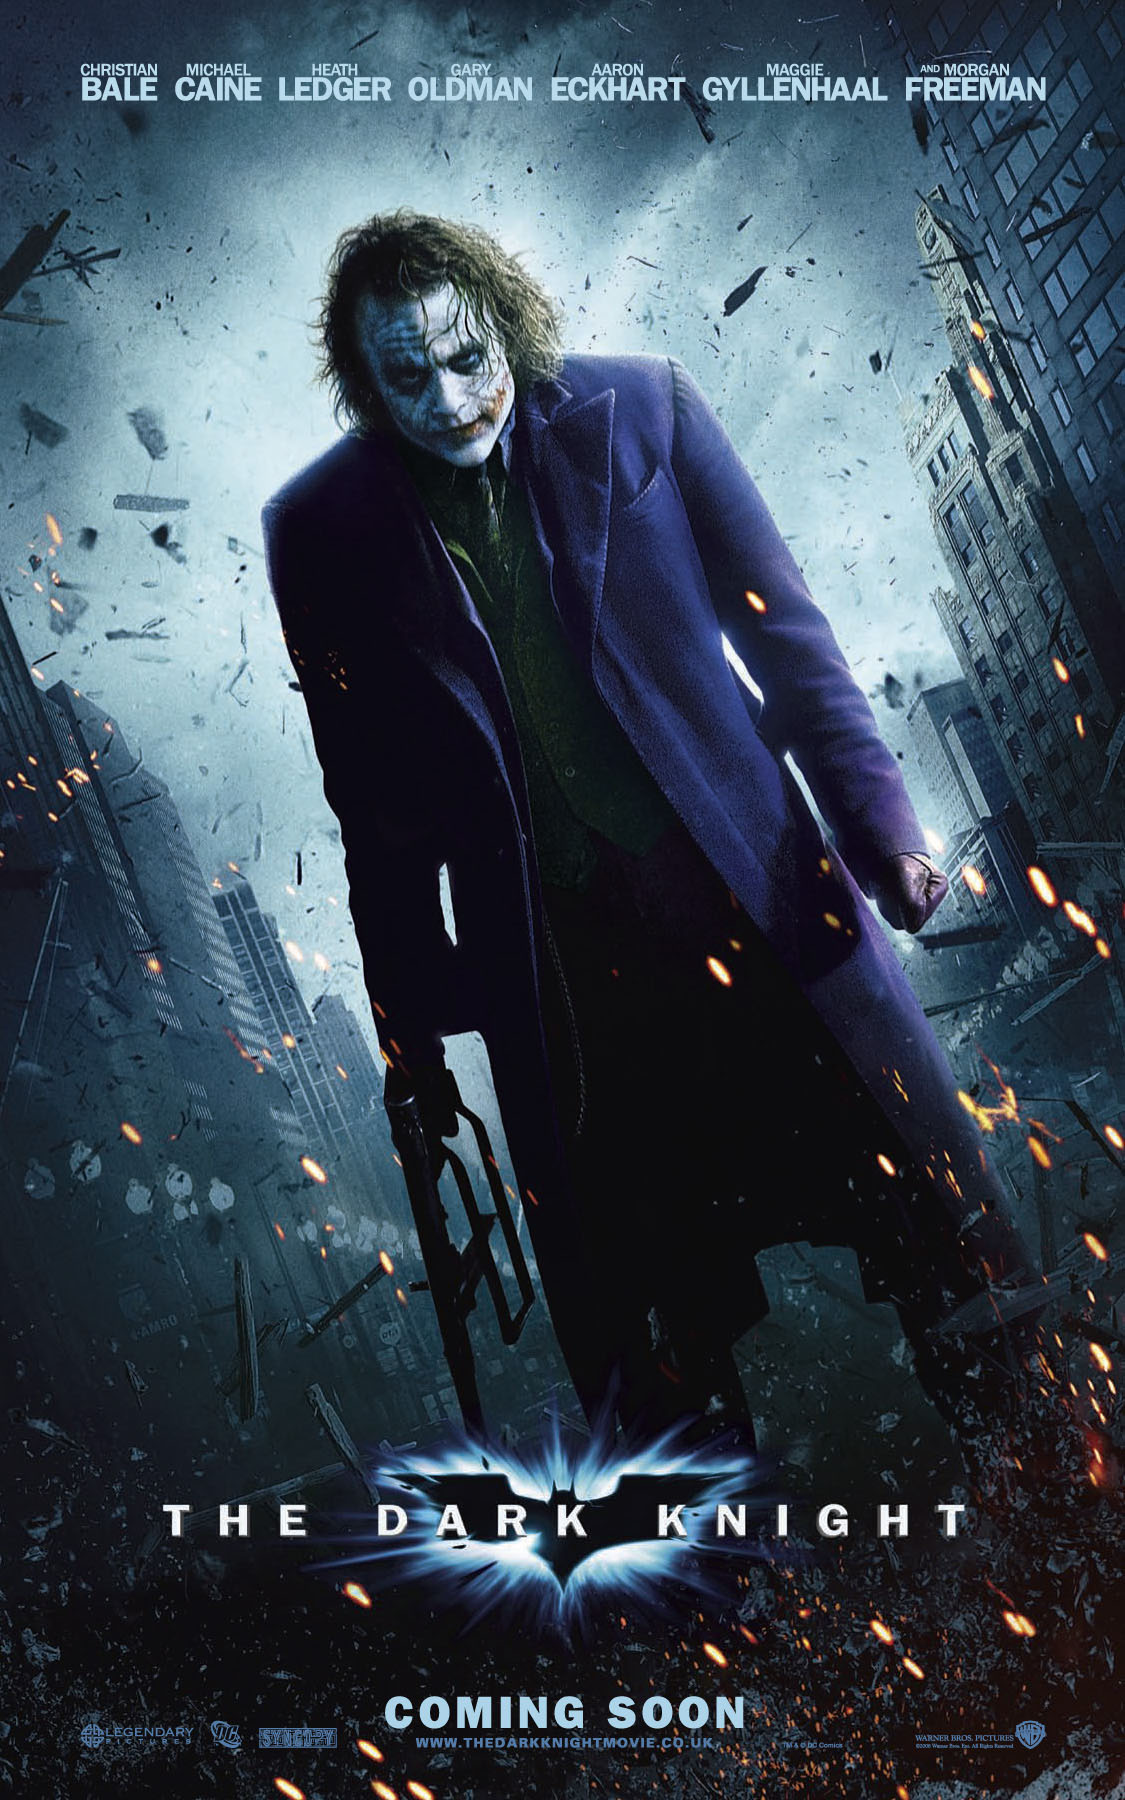 tdk-may17-joker-poster-large.jpg